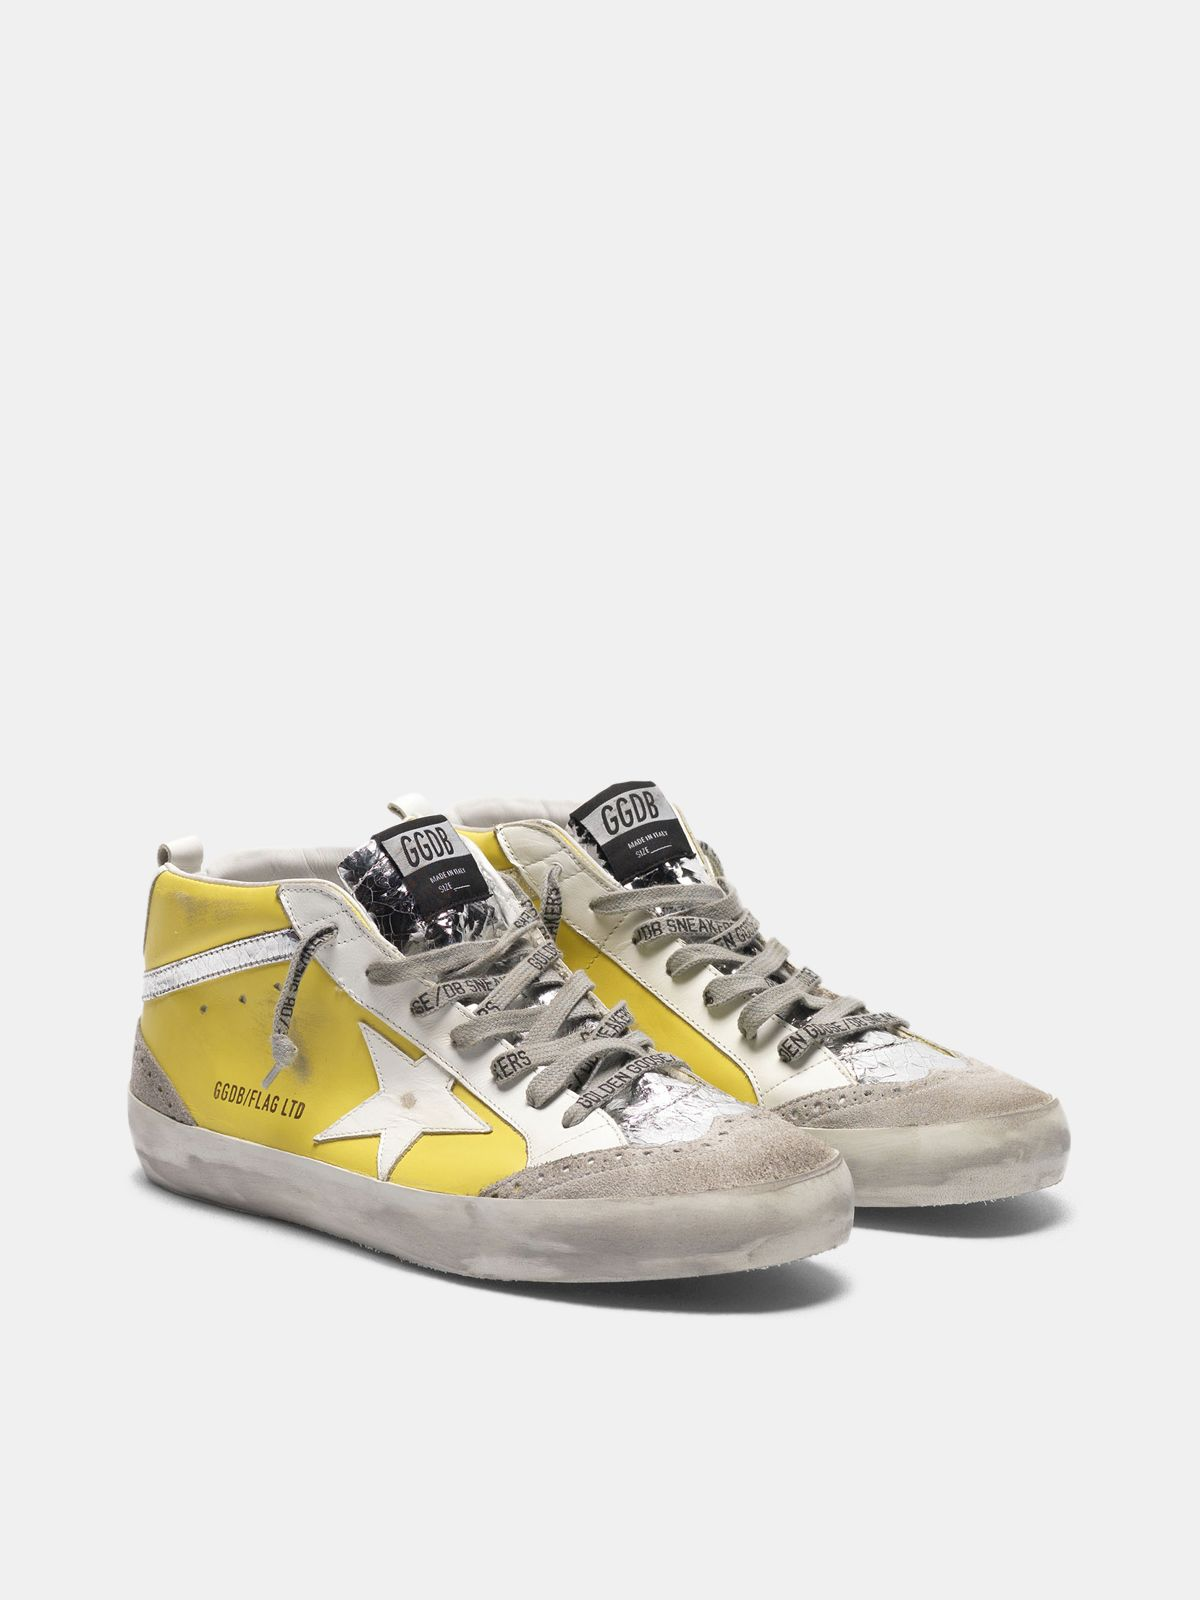 Golden Goose - Mid Star sneakers in leather with crackle details in